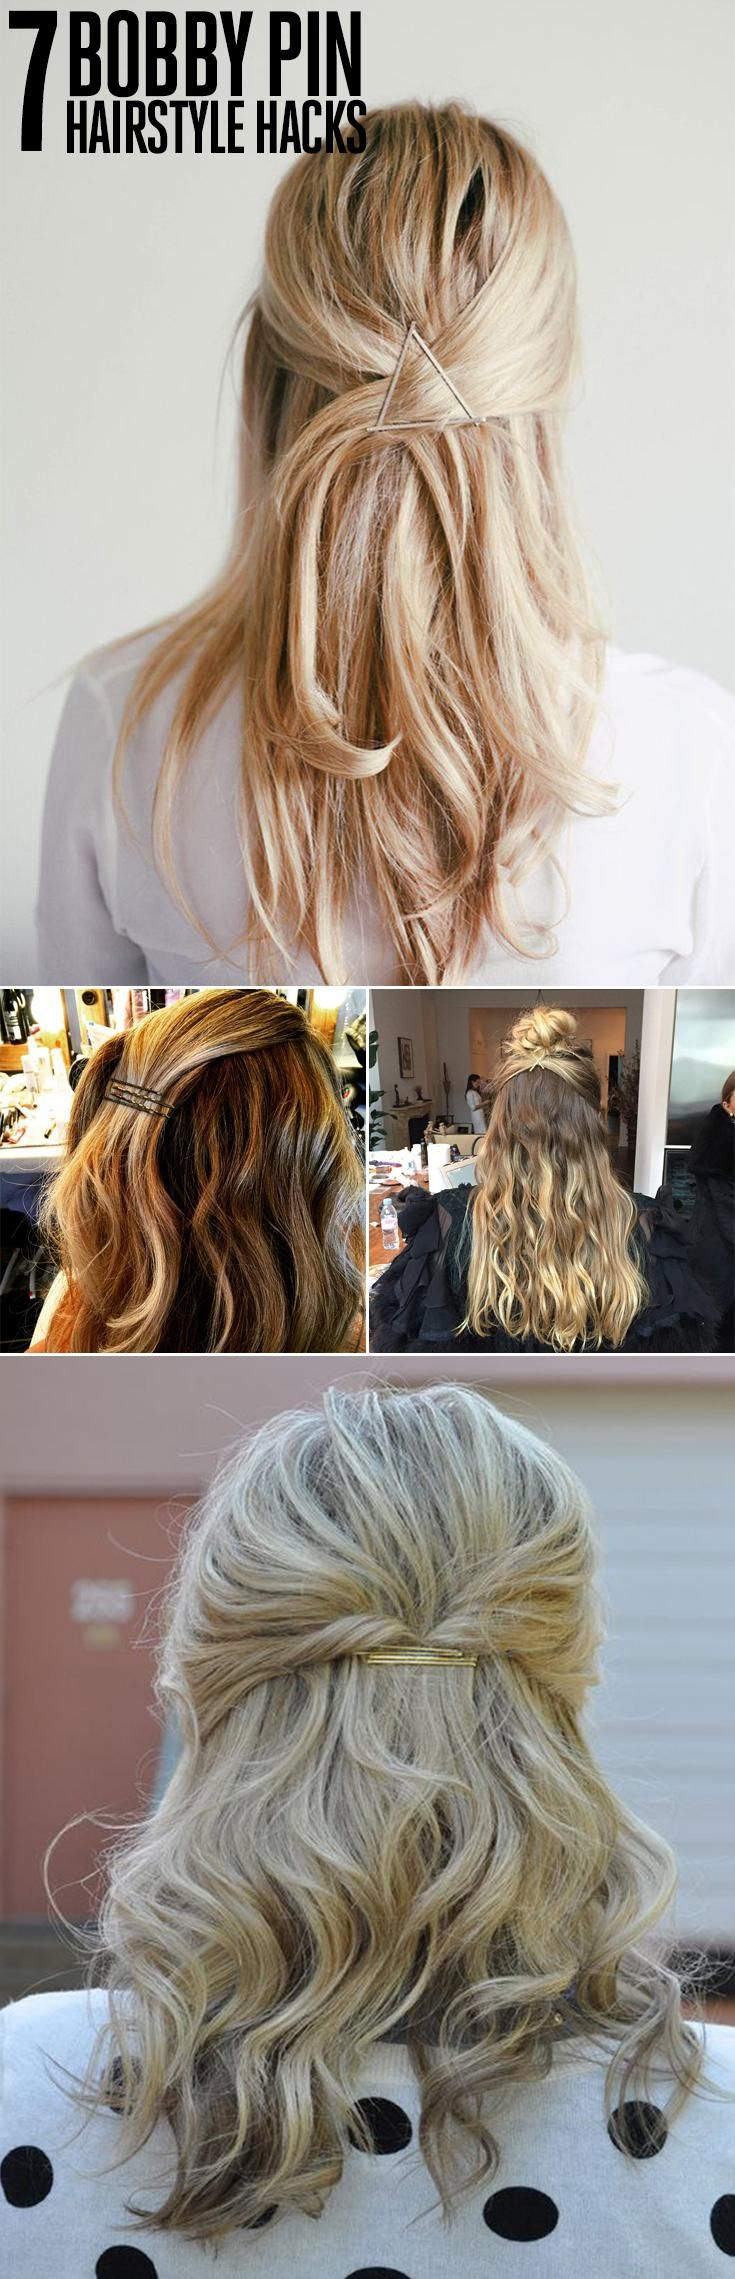 Bobby Pin Hairstyles Whether youure straight from the gym nursing